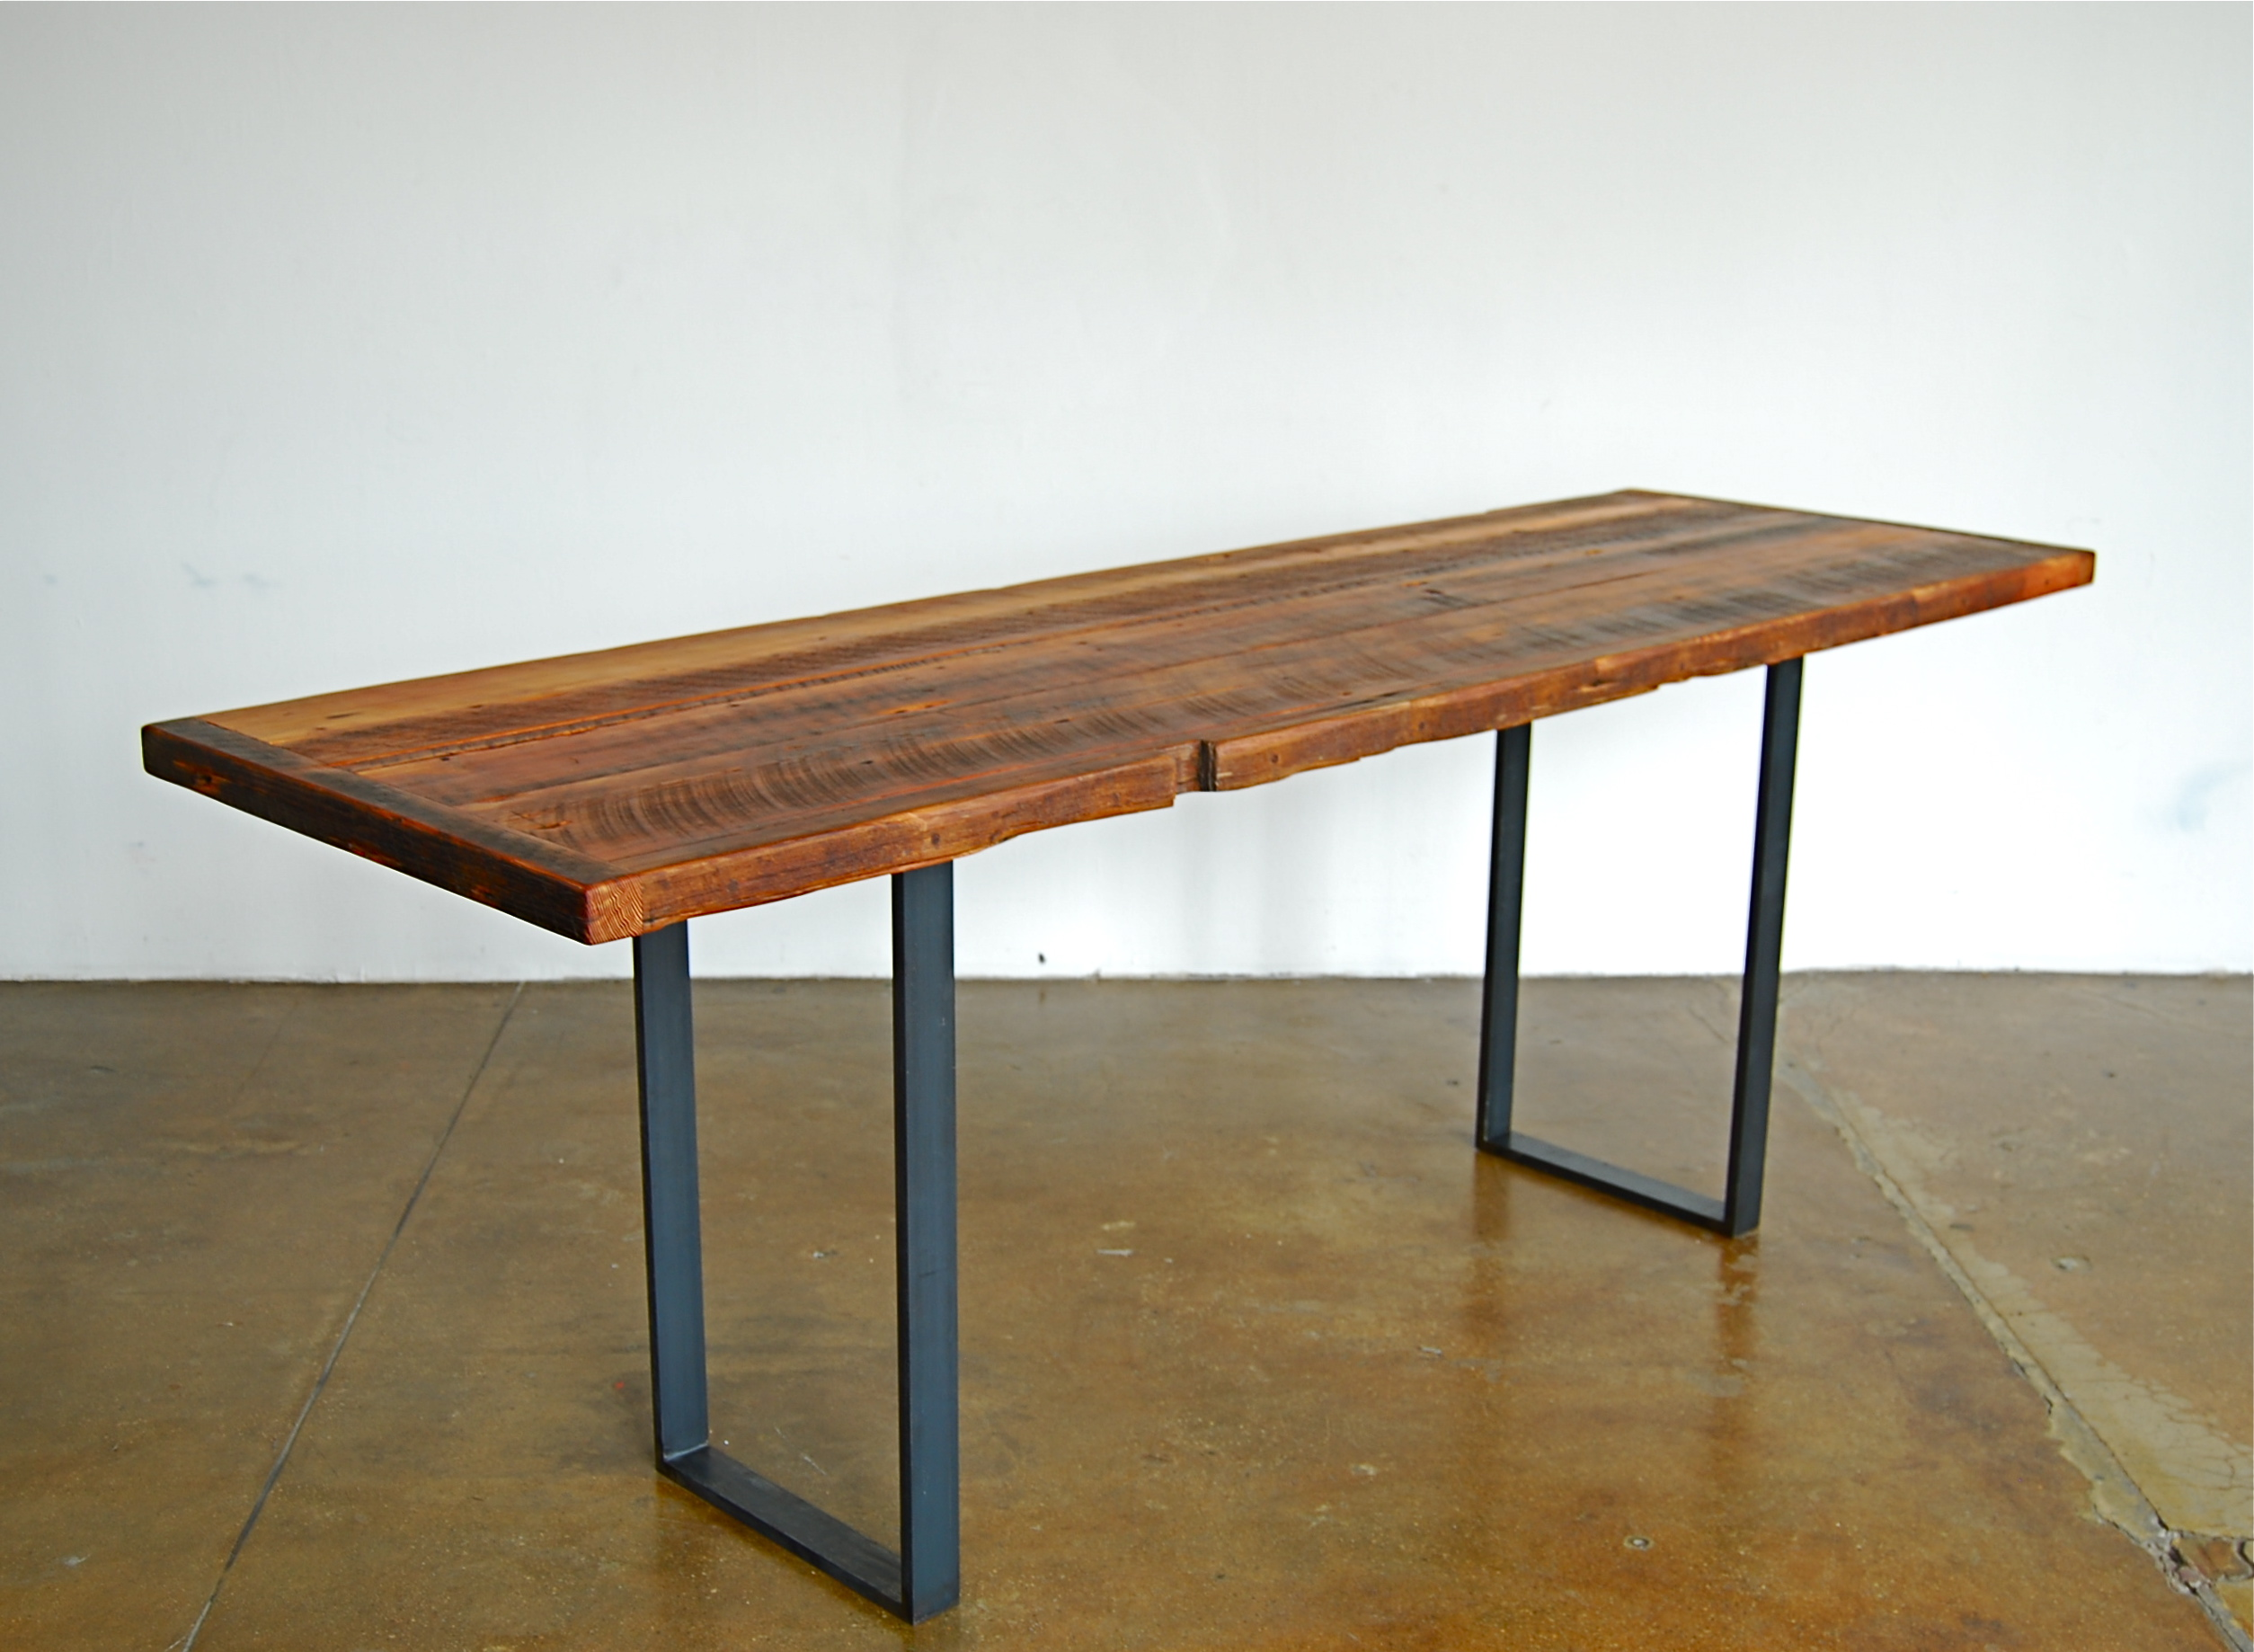 Dwelling Dining Tables On Pinterest Wood